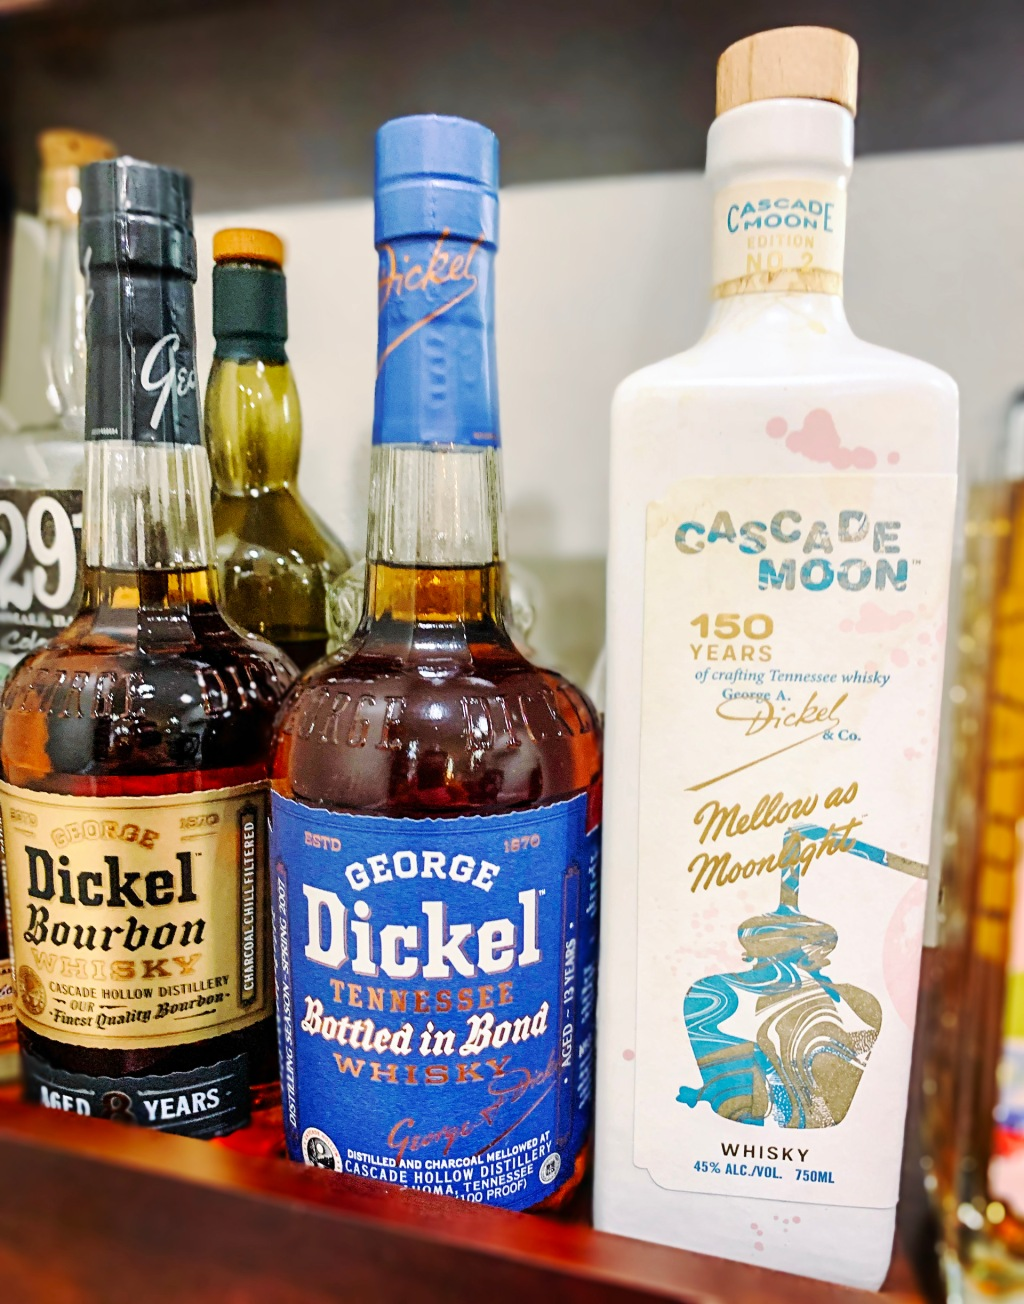 Best Bourbon George Dickel and Cascade Moon